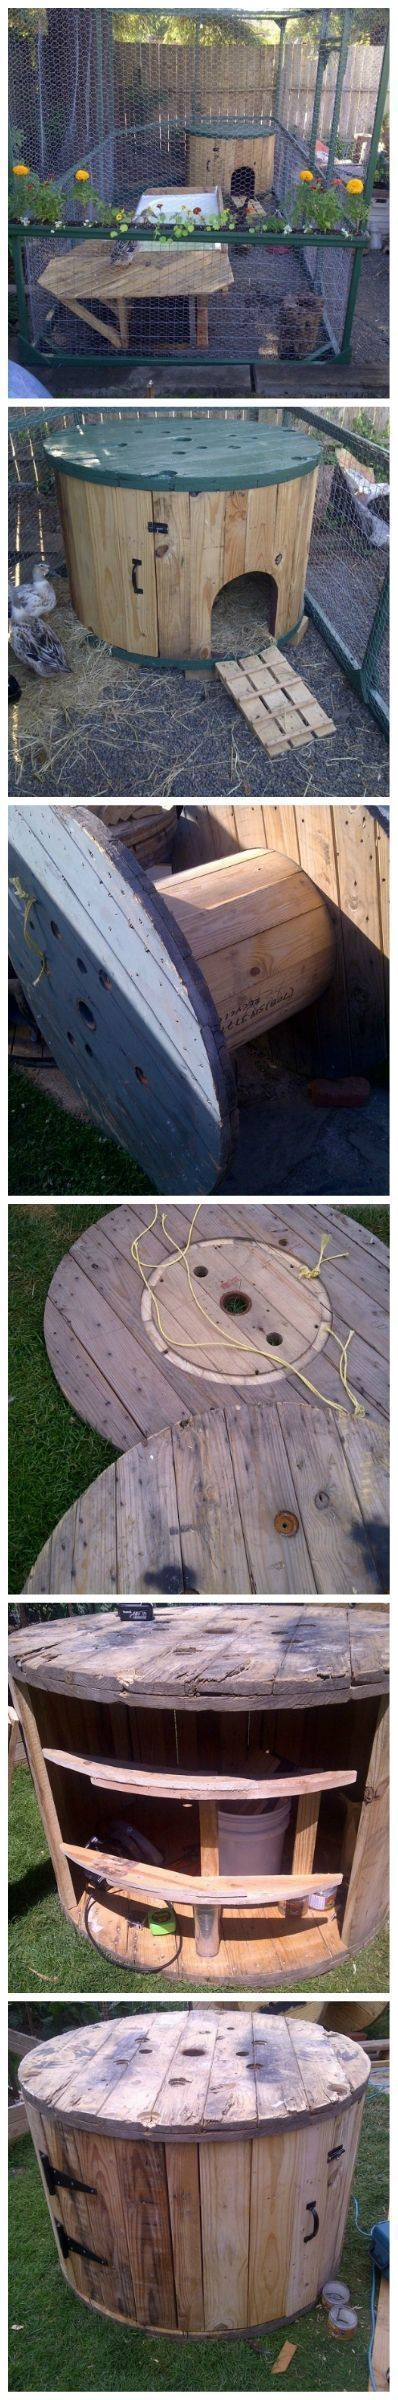 DIY Cable Spool Duck House: #DIYchickencoopplans #ChickenCoopPlans